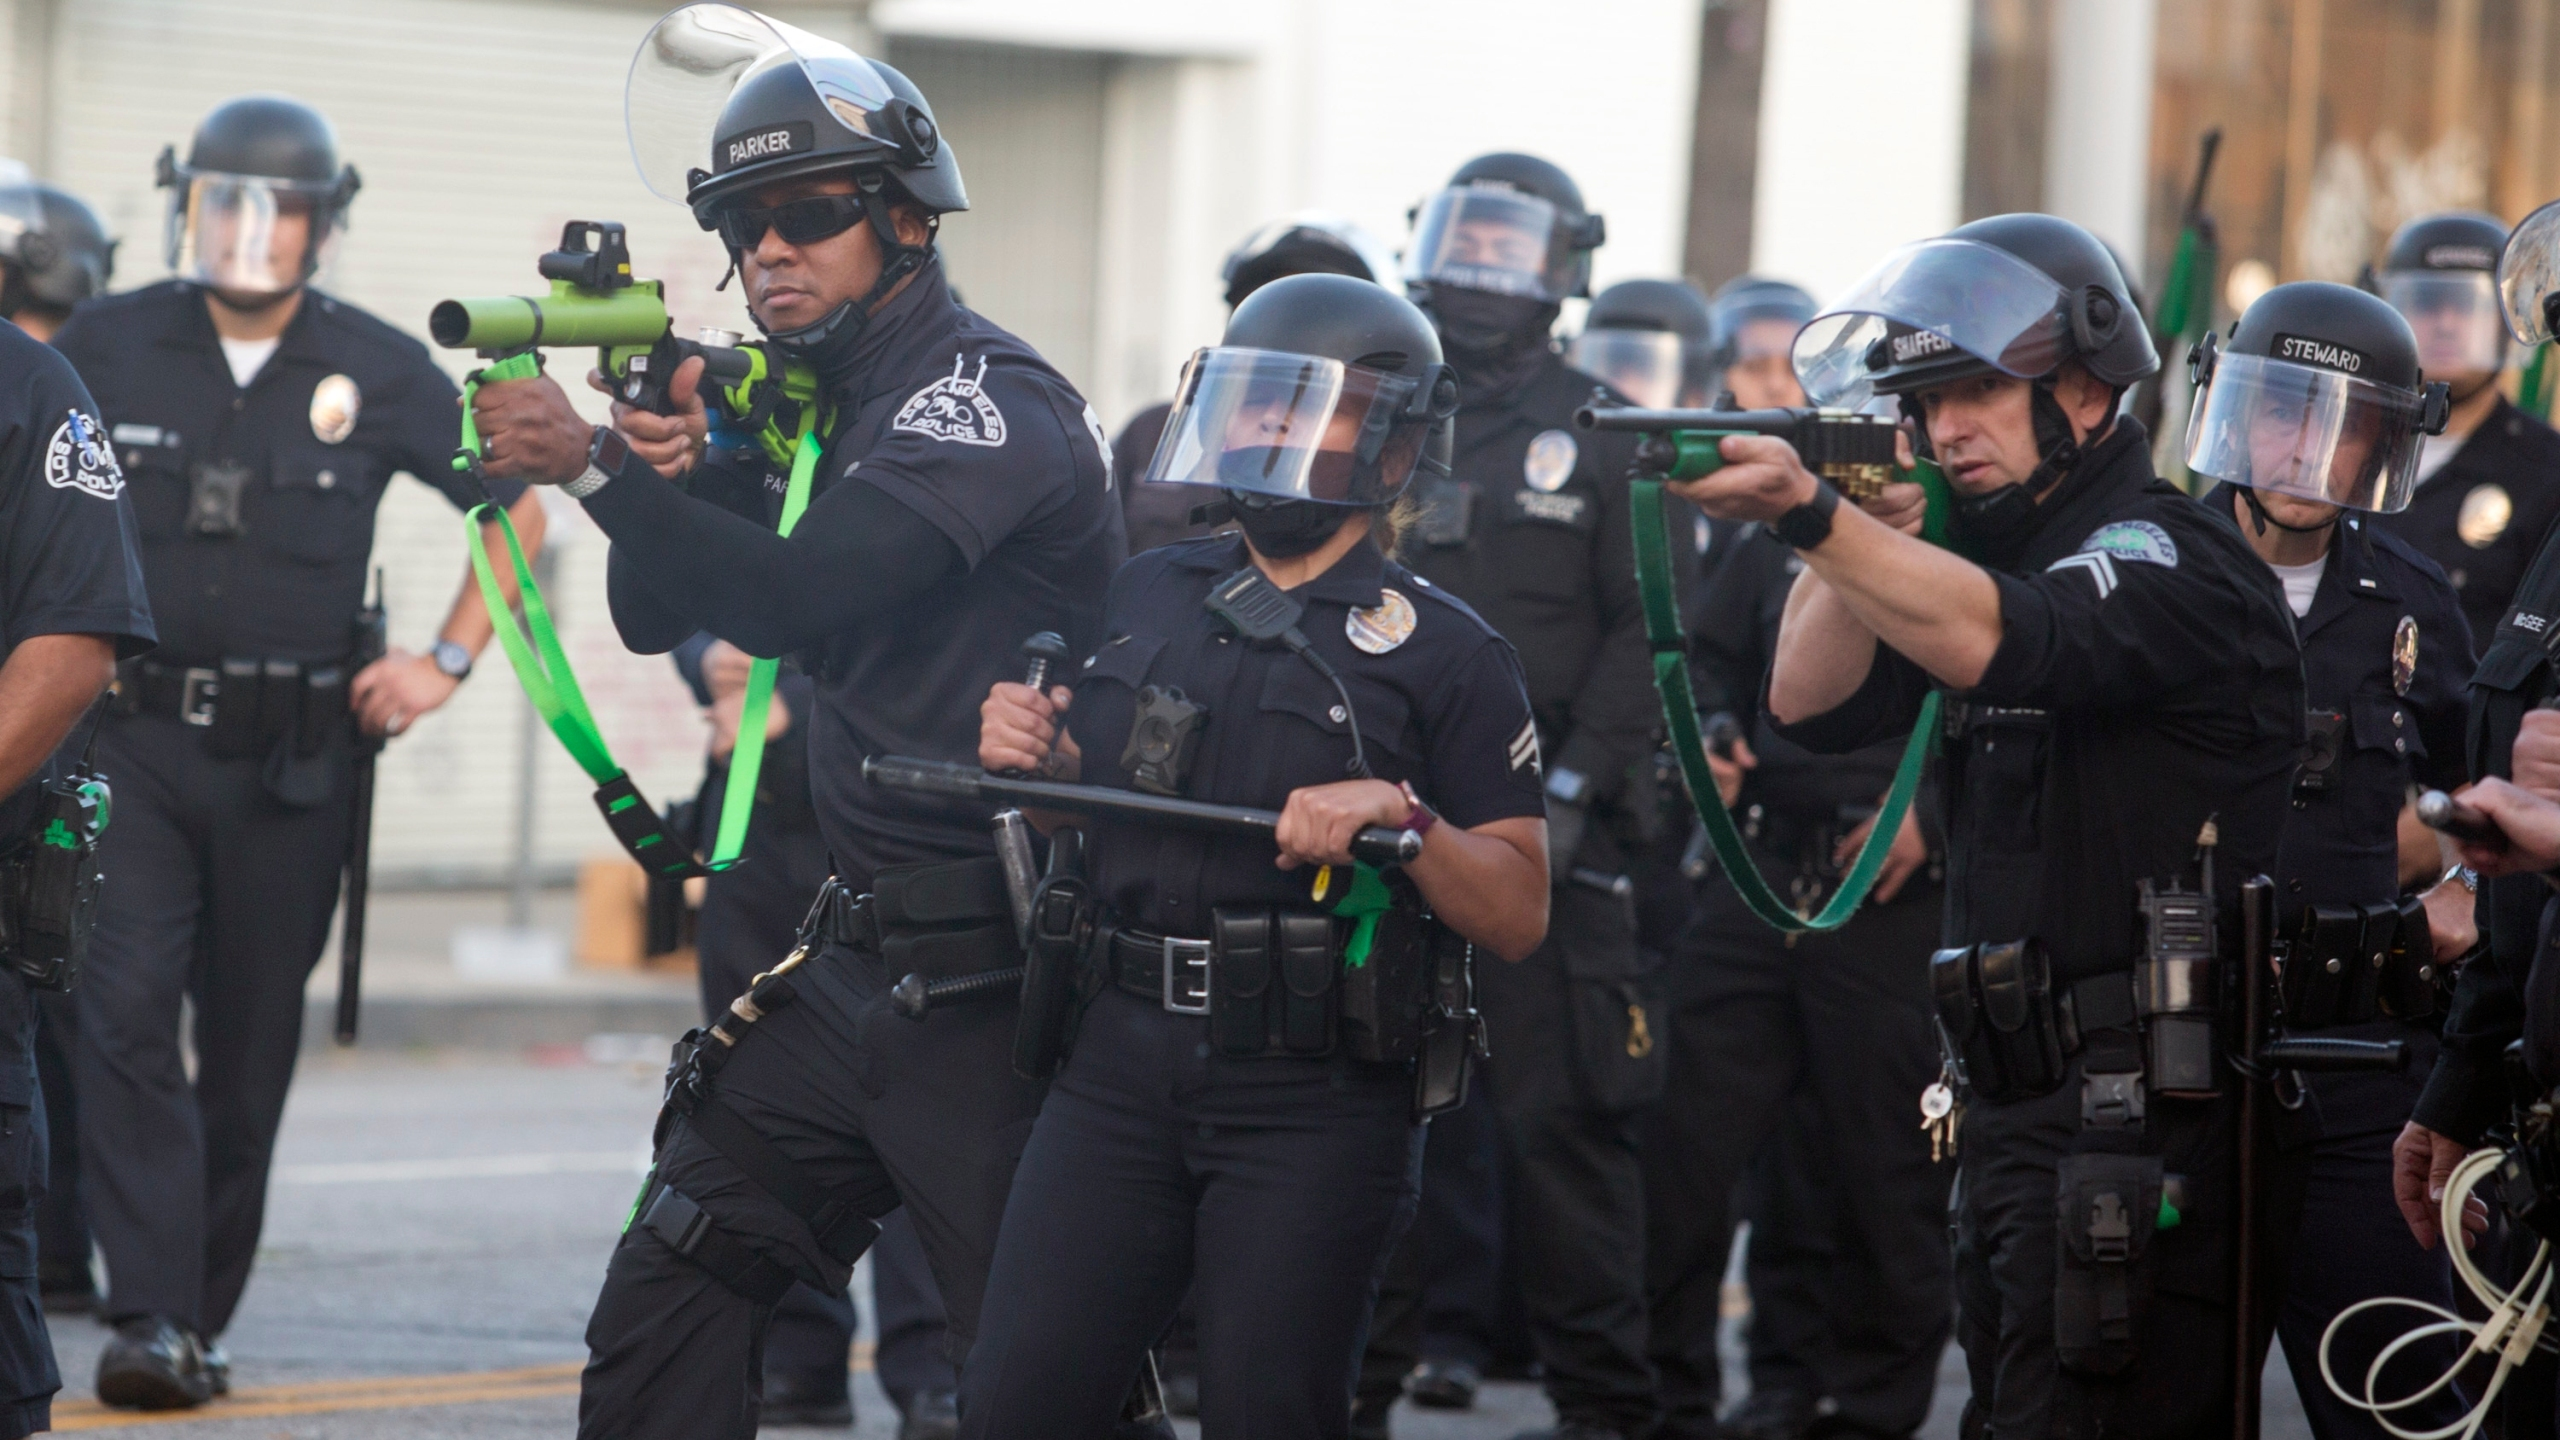 Police aim weapons on demonstrators protesting the death of George Floyd in Los Angeles, Saturday, May 30, 2020. (AP Photo/Ringo H.W. Chiu, File)